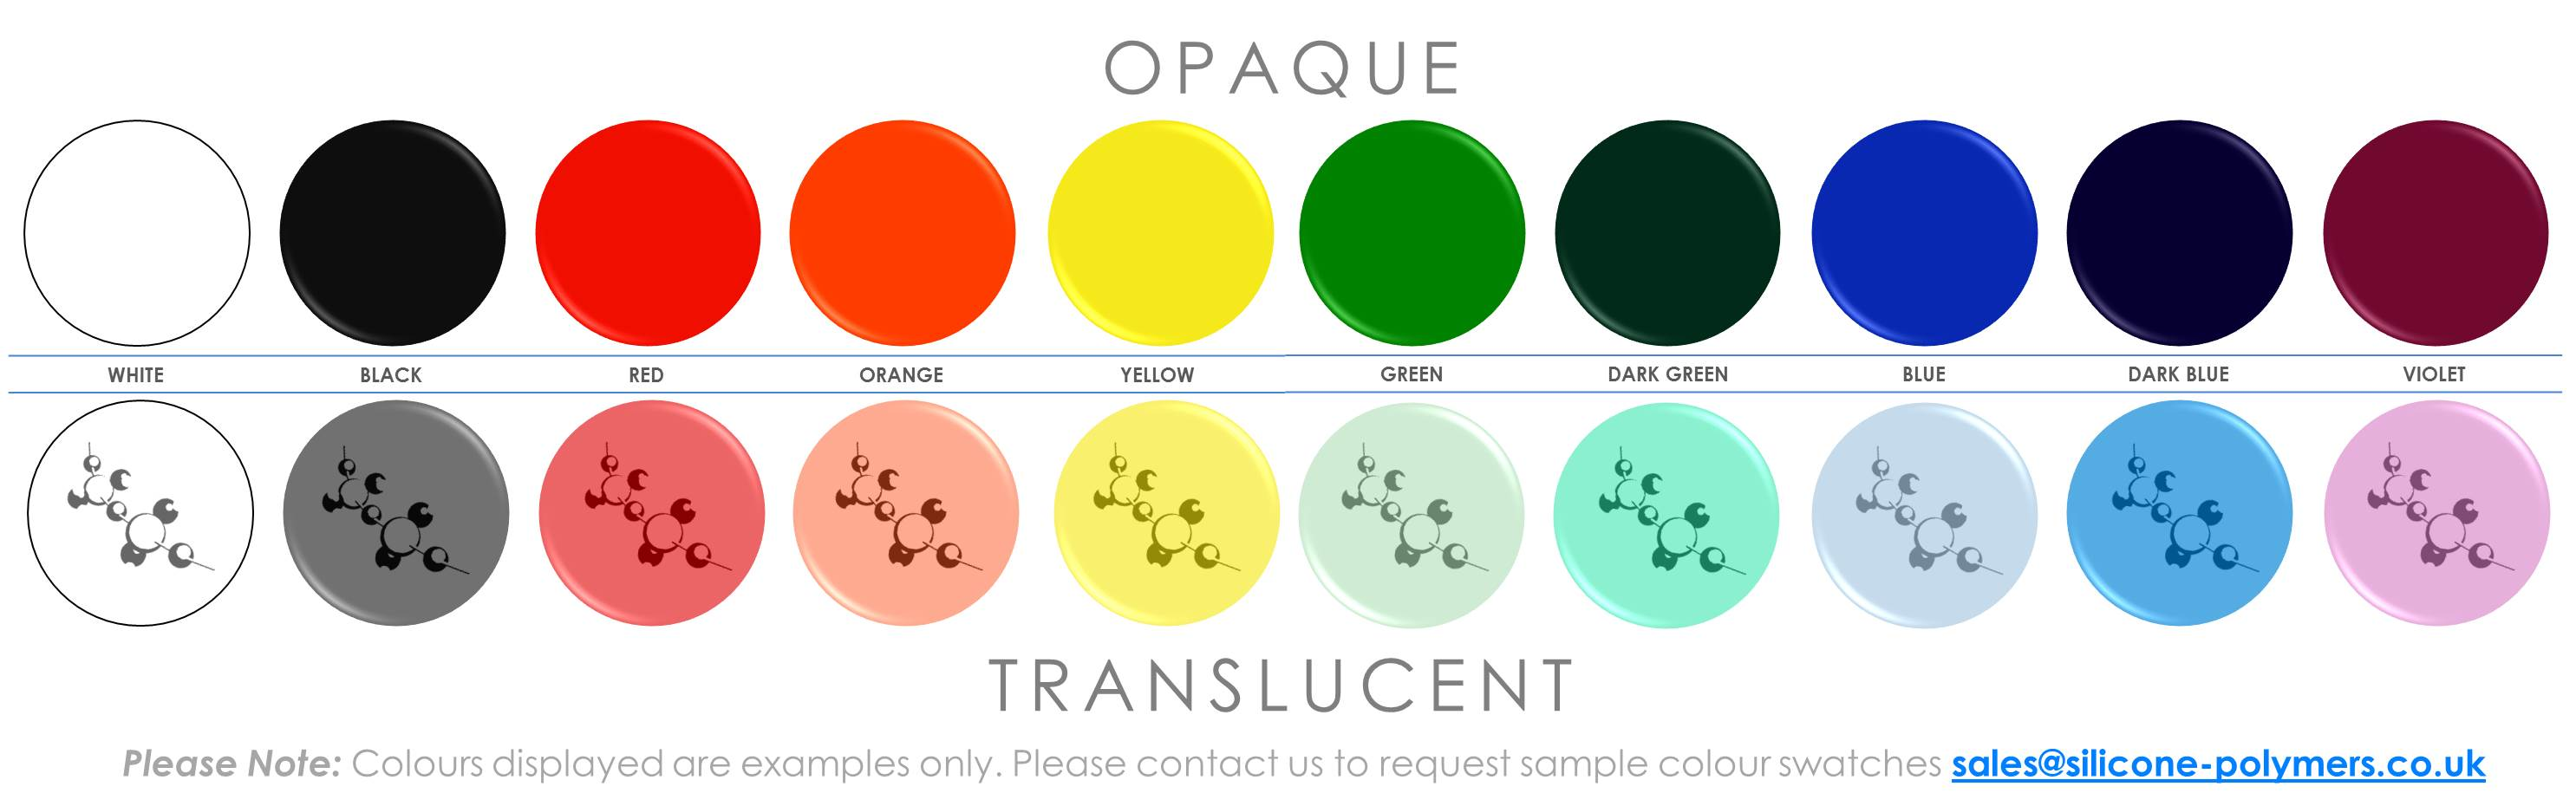 Opaque and Translucent Colour Swatches